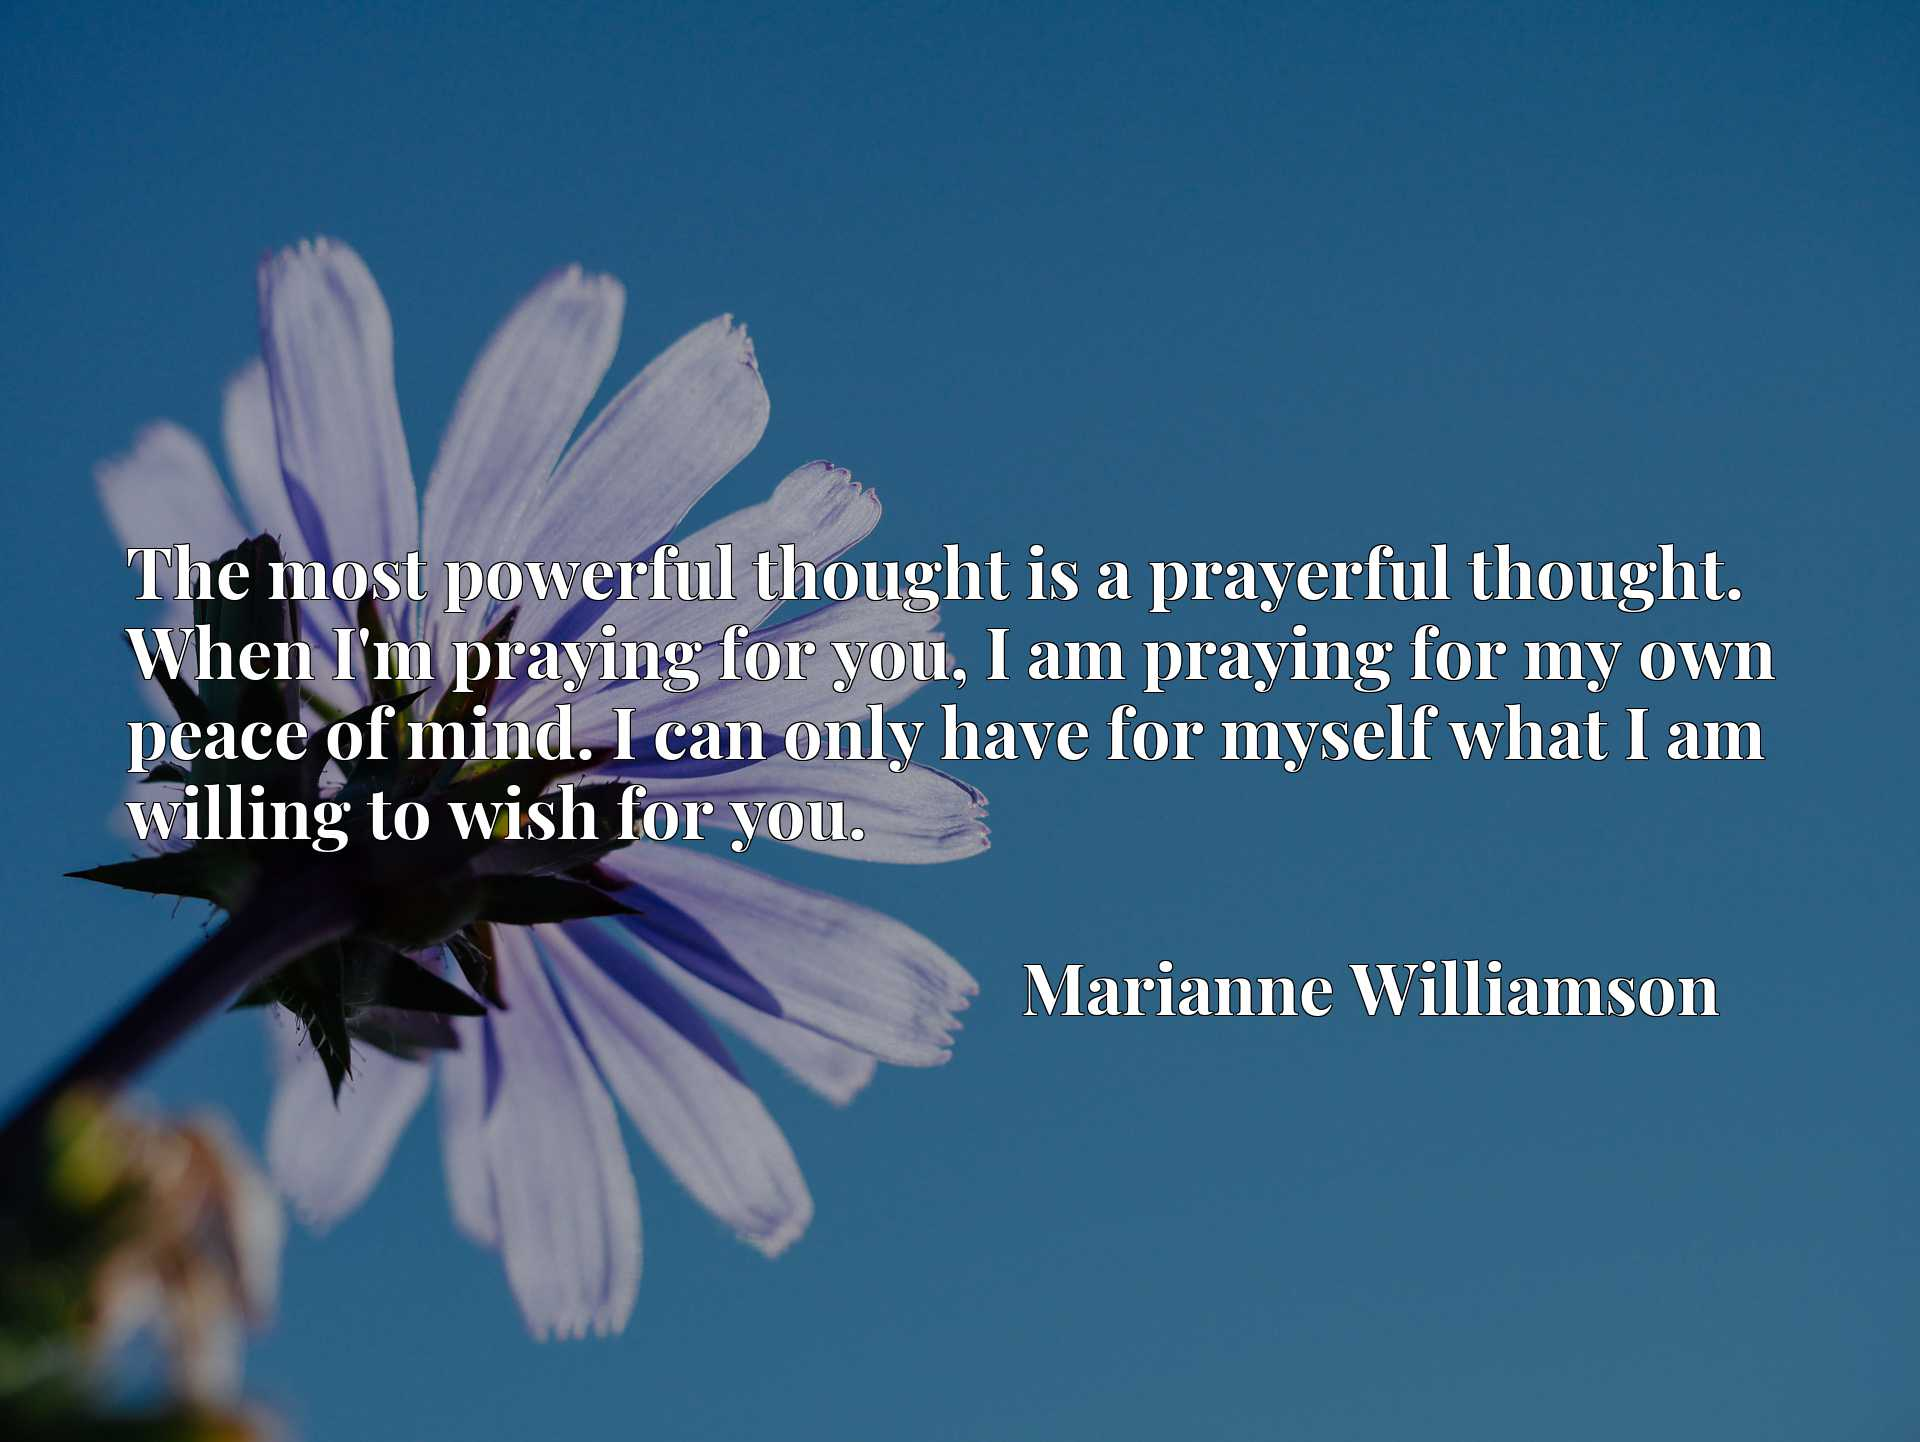 Quote Picture :The most powerful thought is a prayerful thought. When I'm praying for you, I am praying for my own peace of mind. I can only have for myself what I am willing to wish for you.